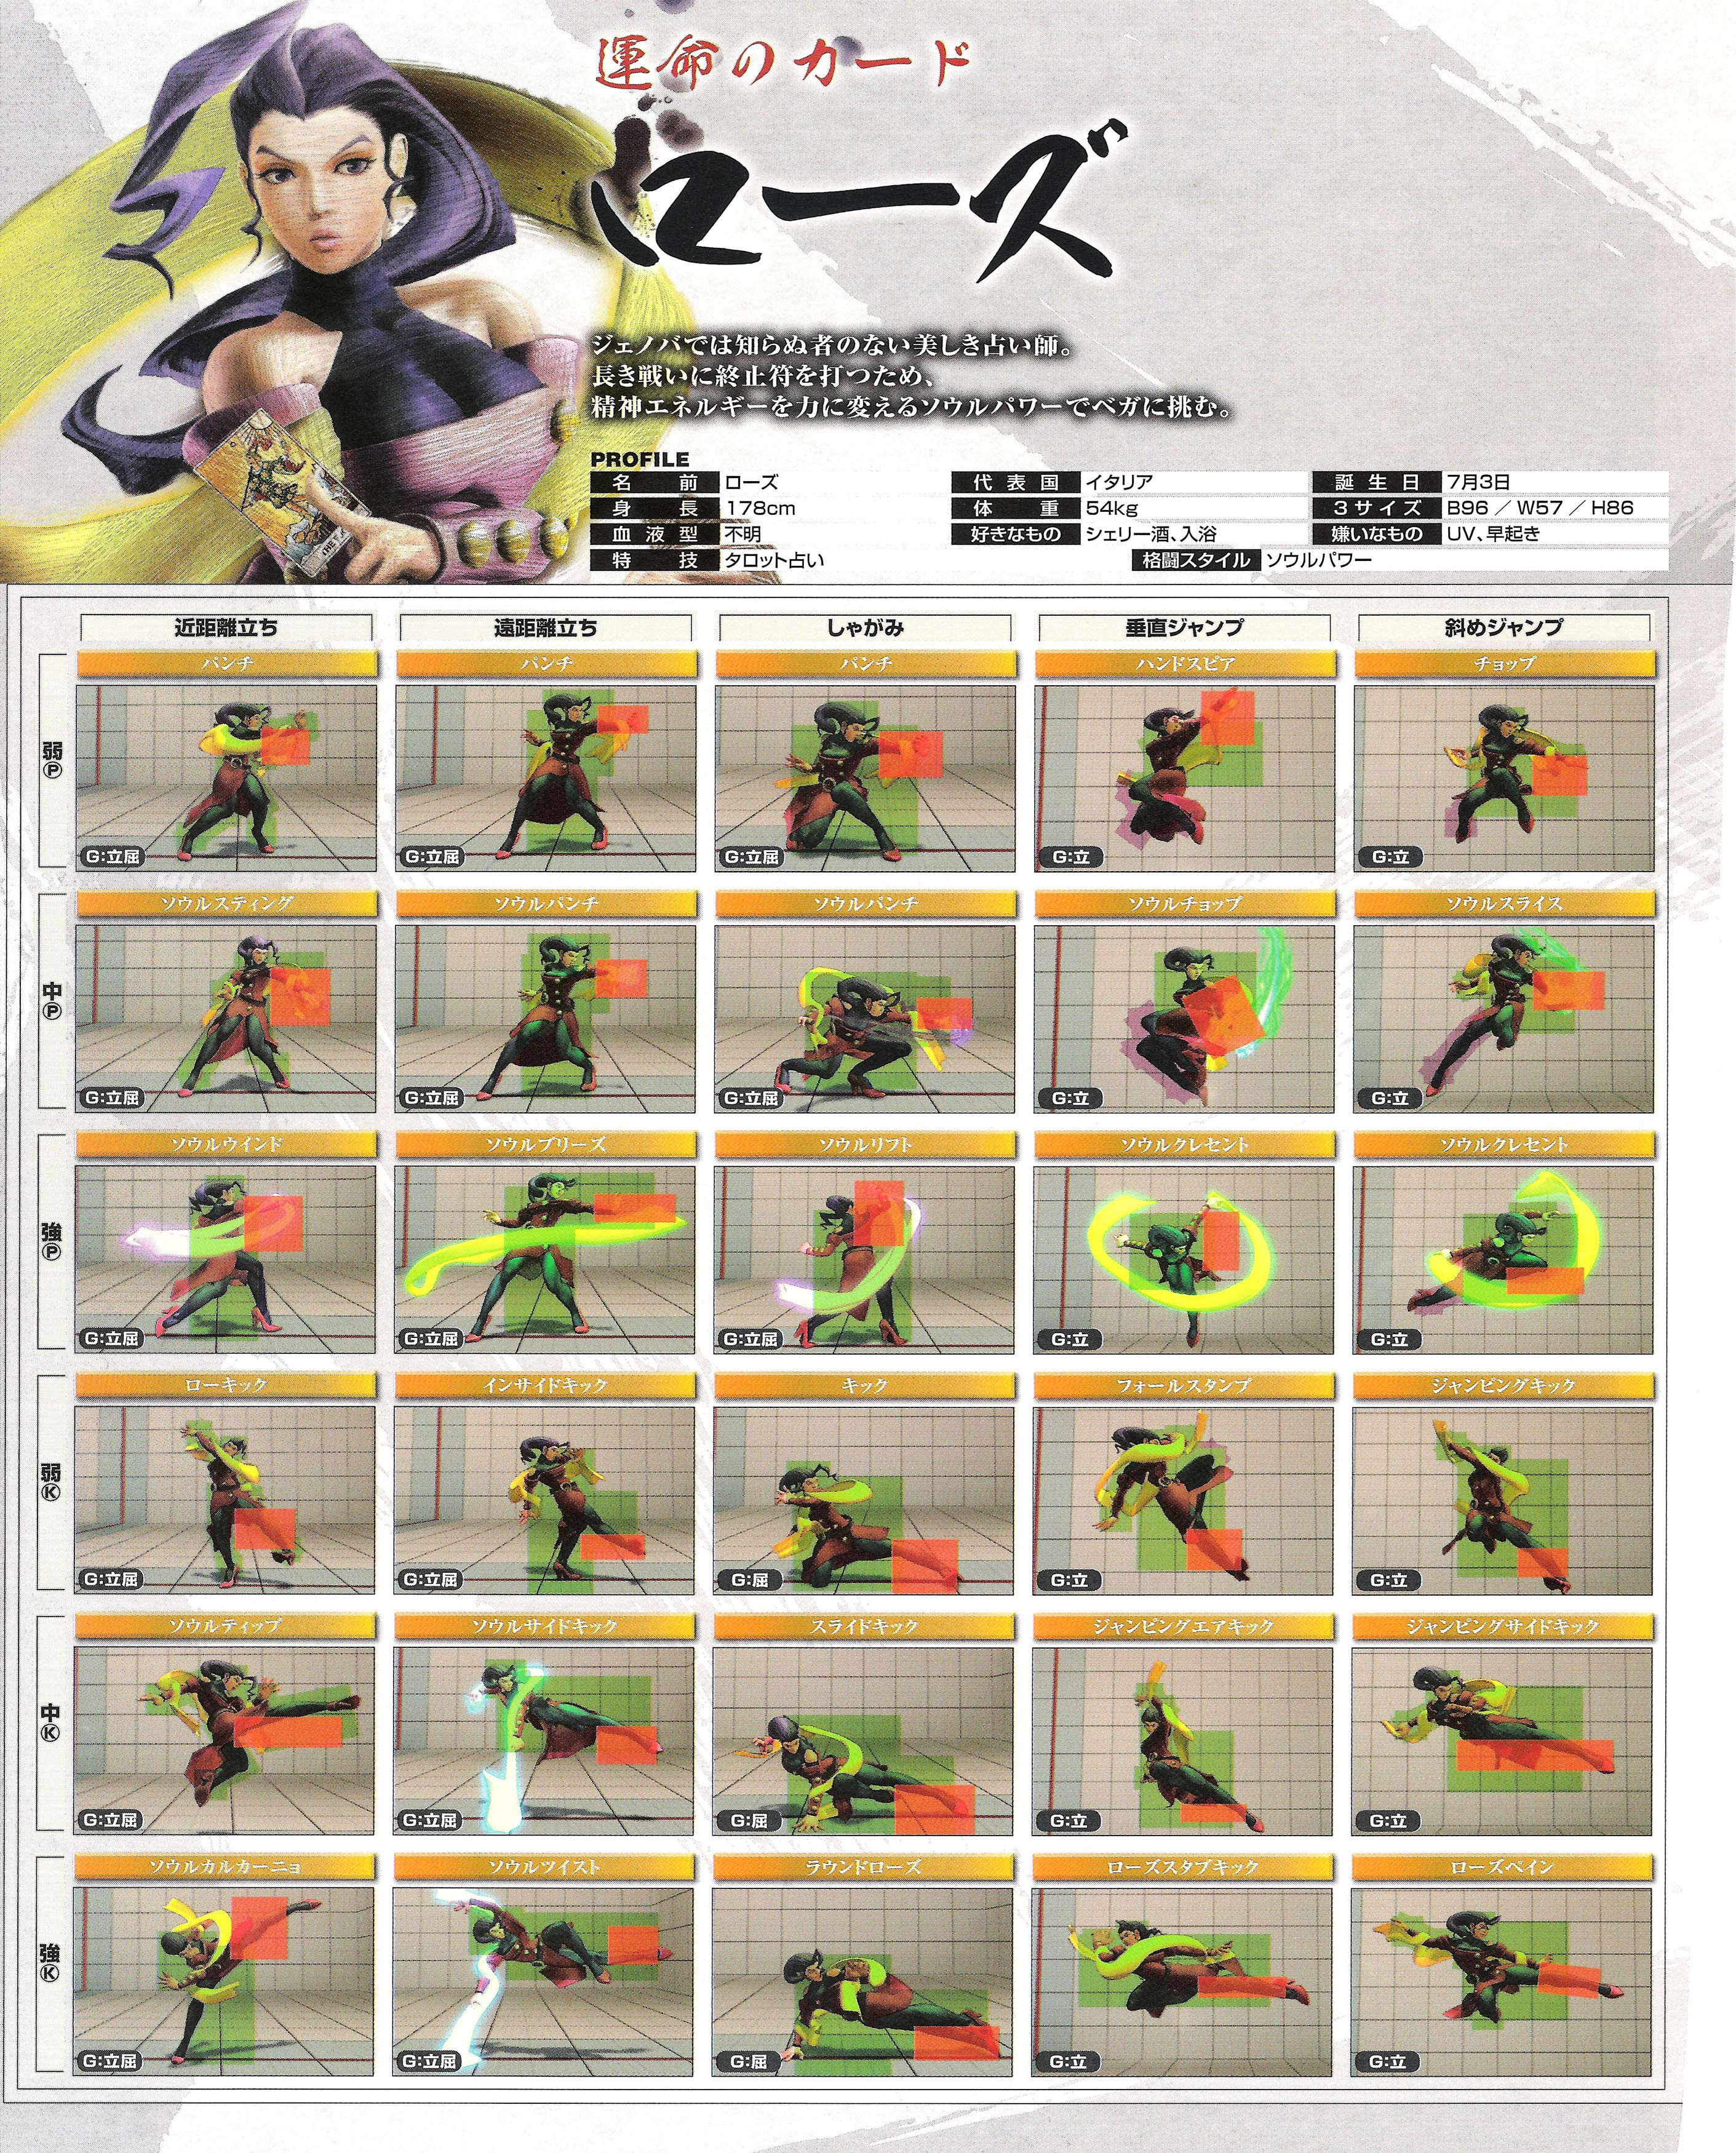 Rose's hit box information for Super Street Fighter 4 Arcade Edition image #1